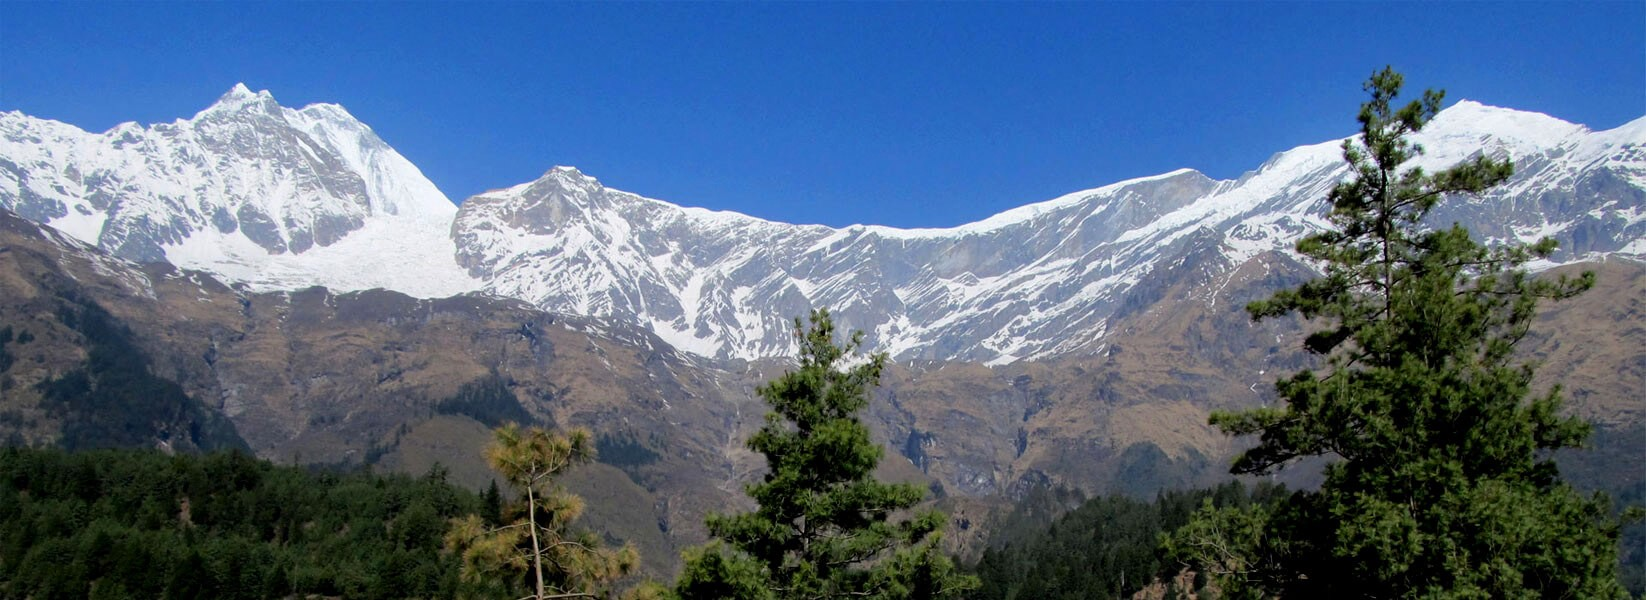 Kaligandaki valley trek